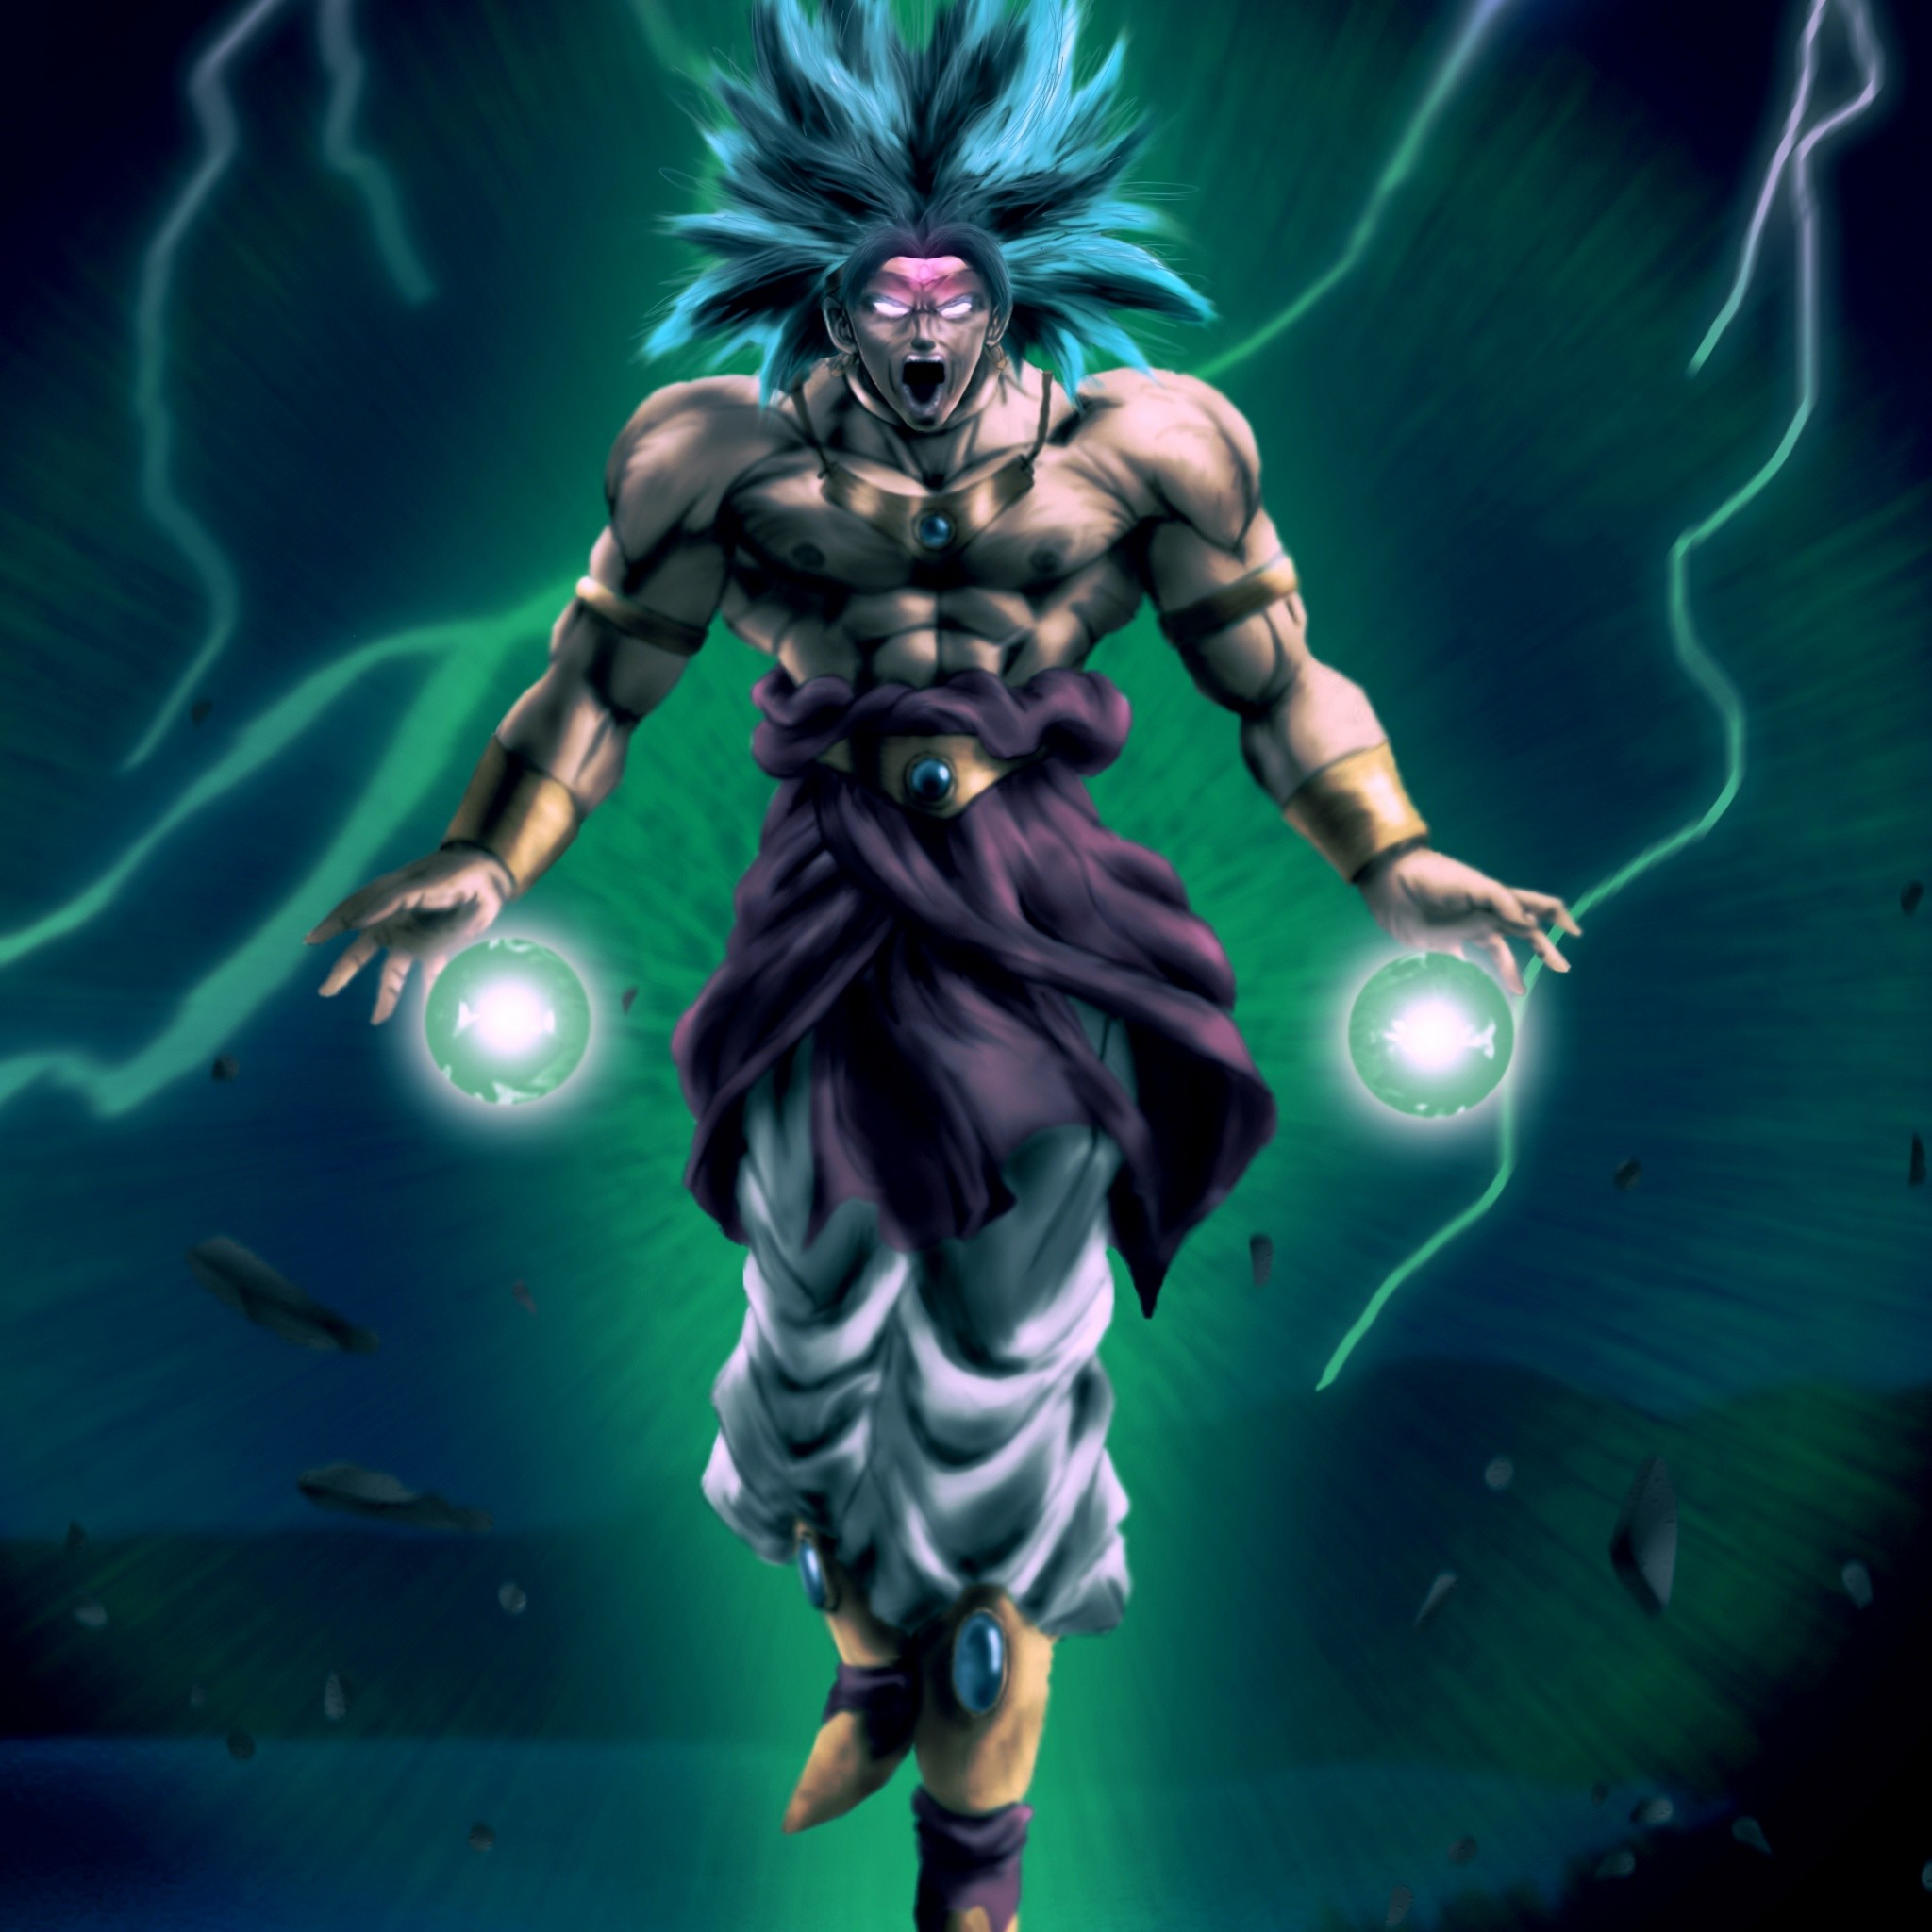 Legendary Super Saiyan – Tap to see more awesomely cool Dragon Ball Z  wallpaper! –